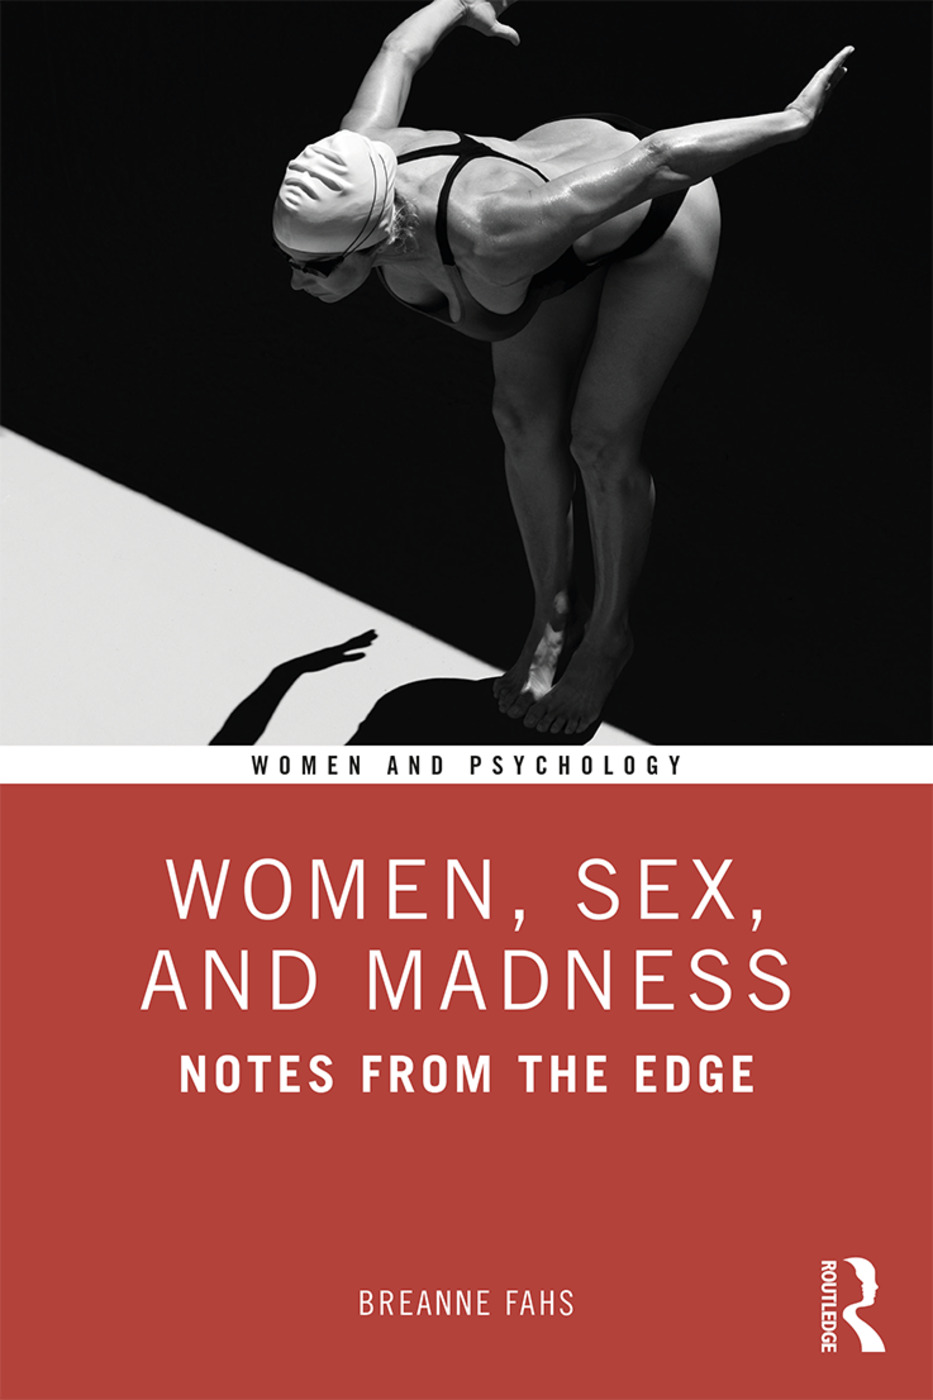 Women, Sex, and Madness: Notes from the Edge book cover